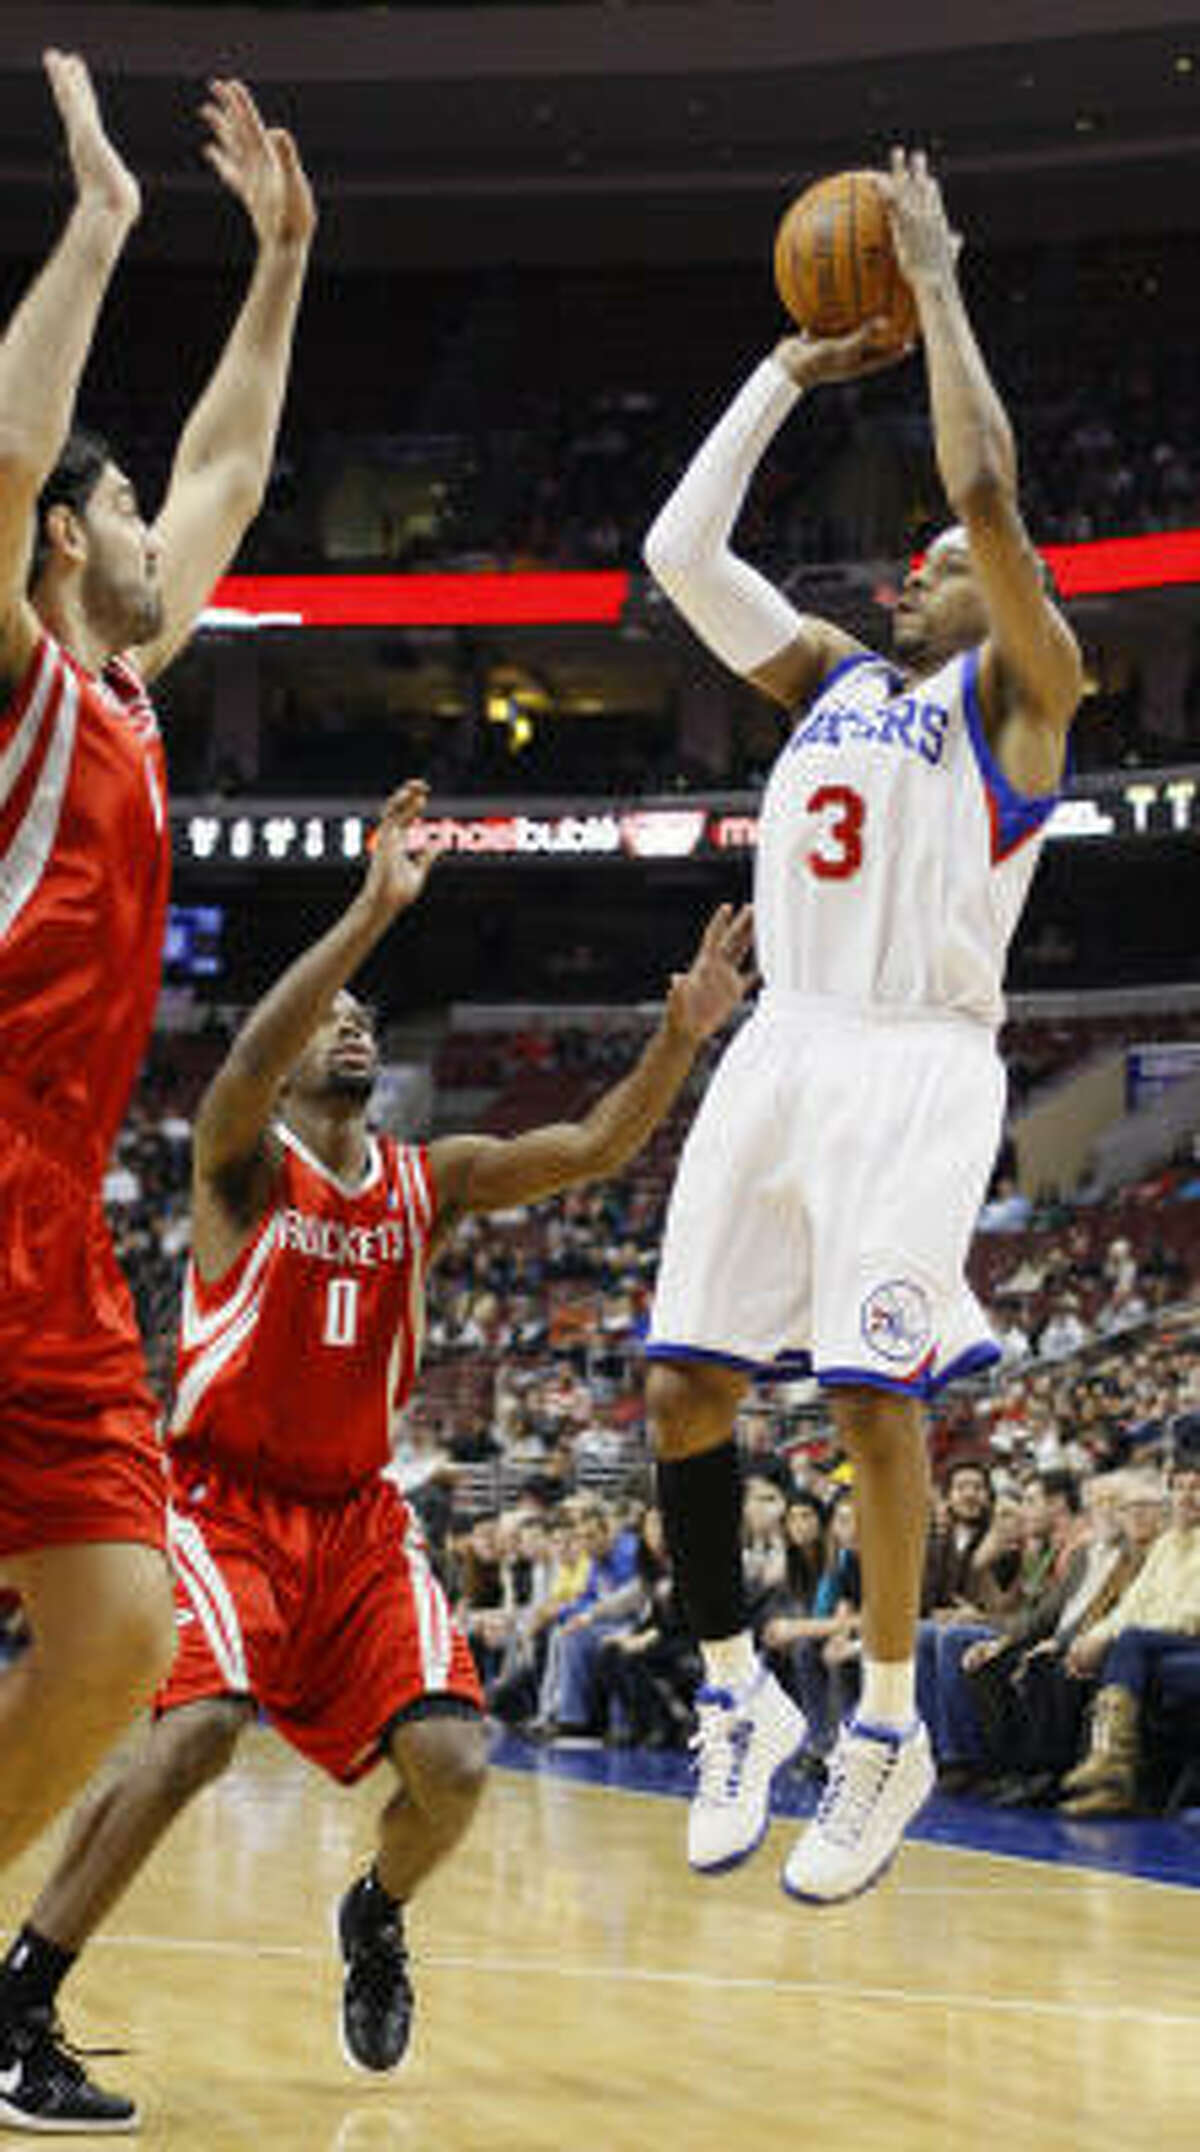 76ers guard Allen Iverson, right, goes up for a shot as Aaron Brooks (0) and Luis Scola defend.